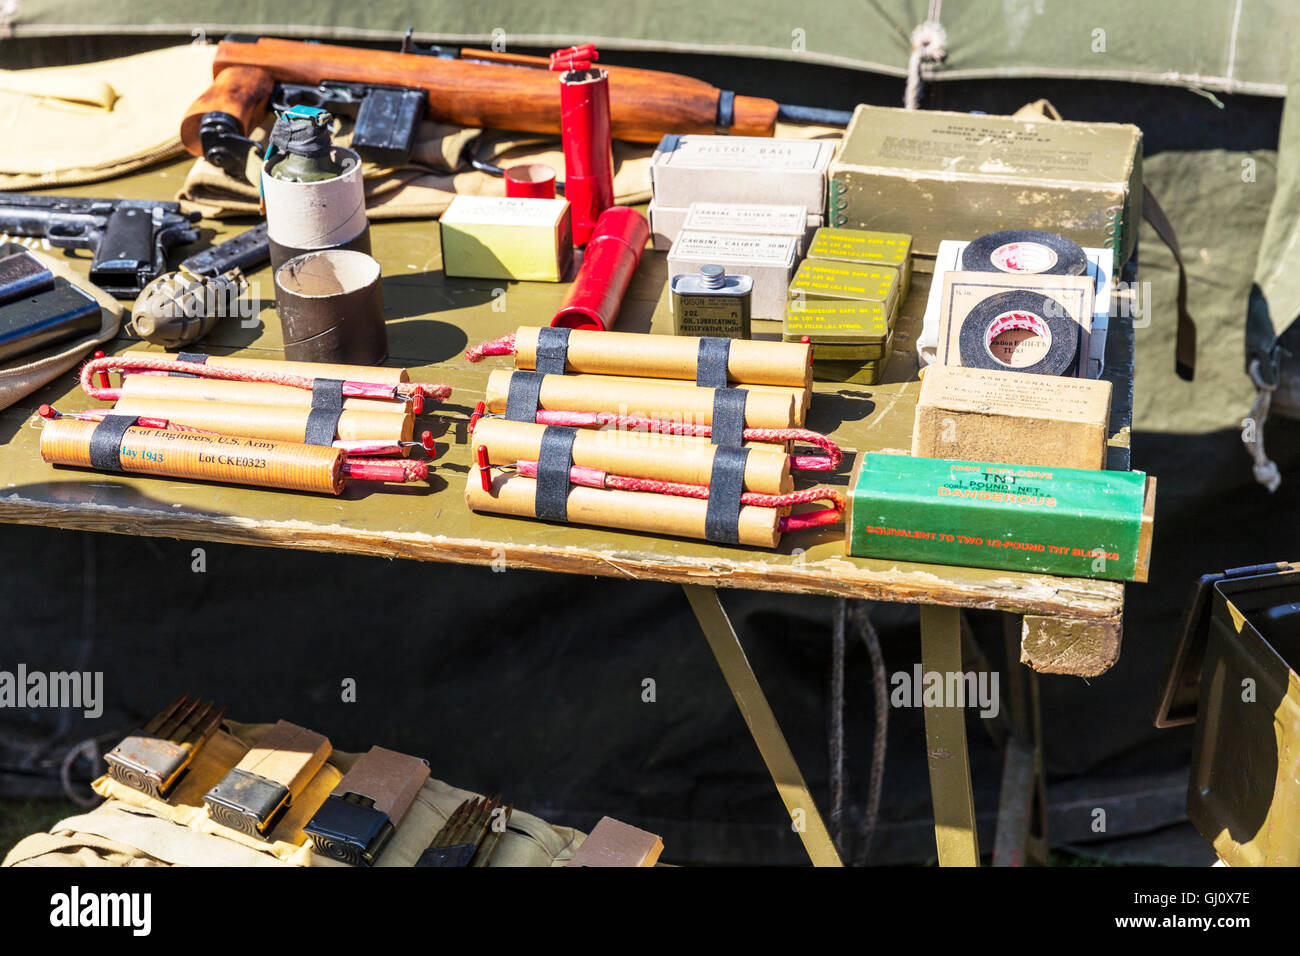 Dynamite tnt T.N.T. explosives explosive sticks stick fuse grenade grenades tape detonation devices war UK England - Stock Image